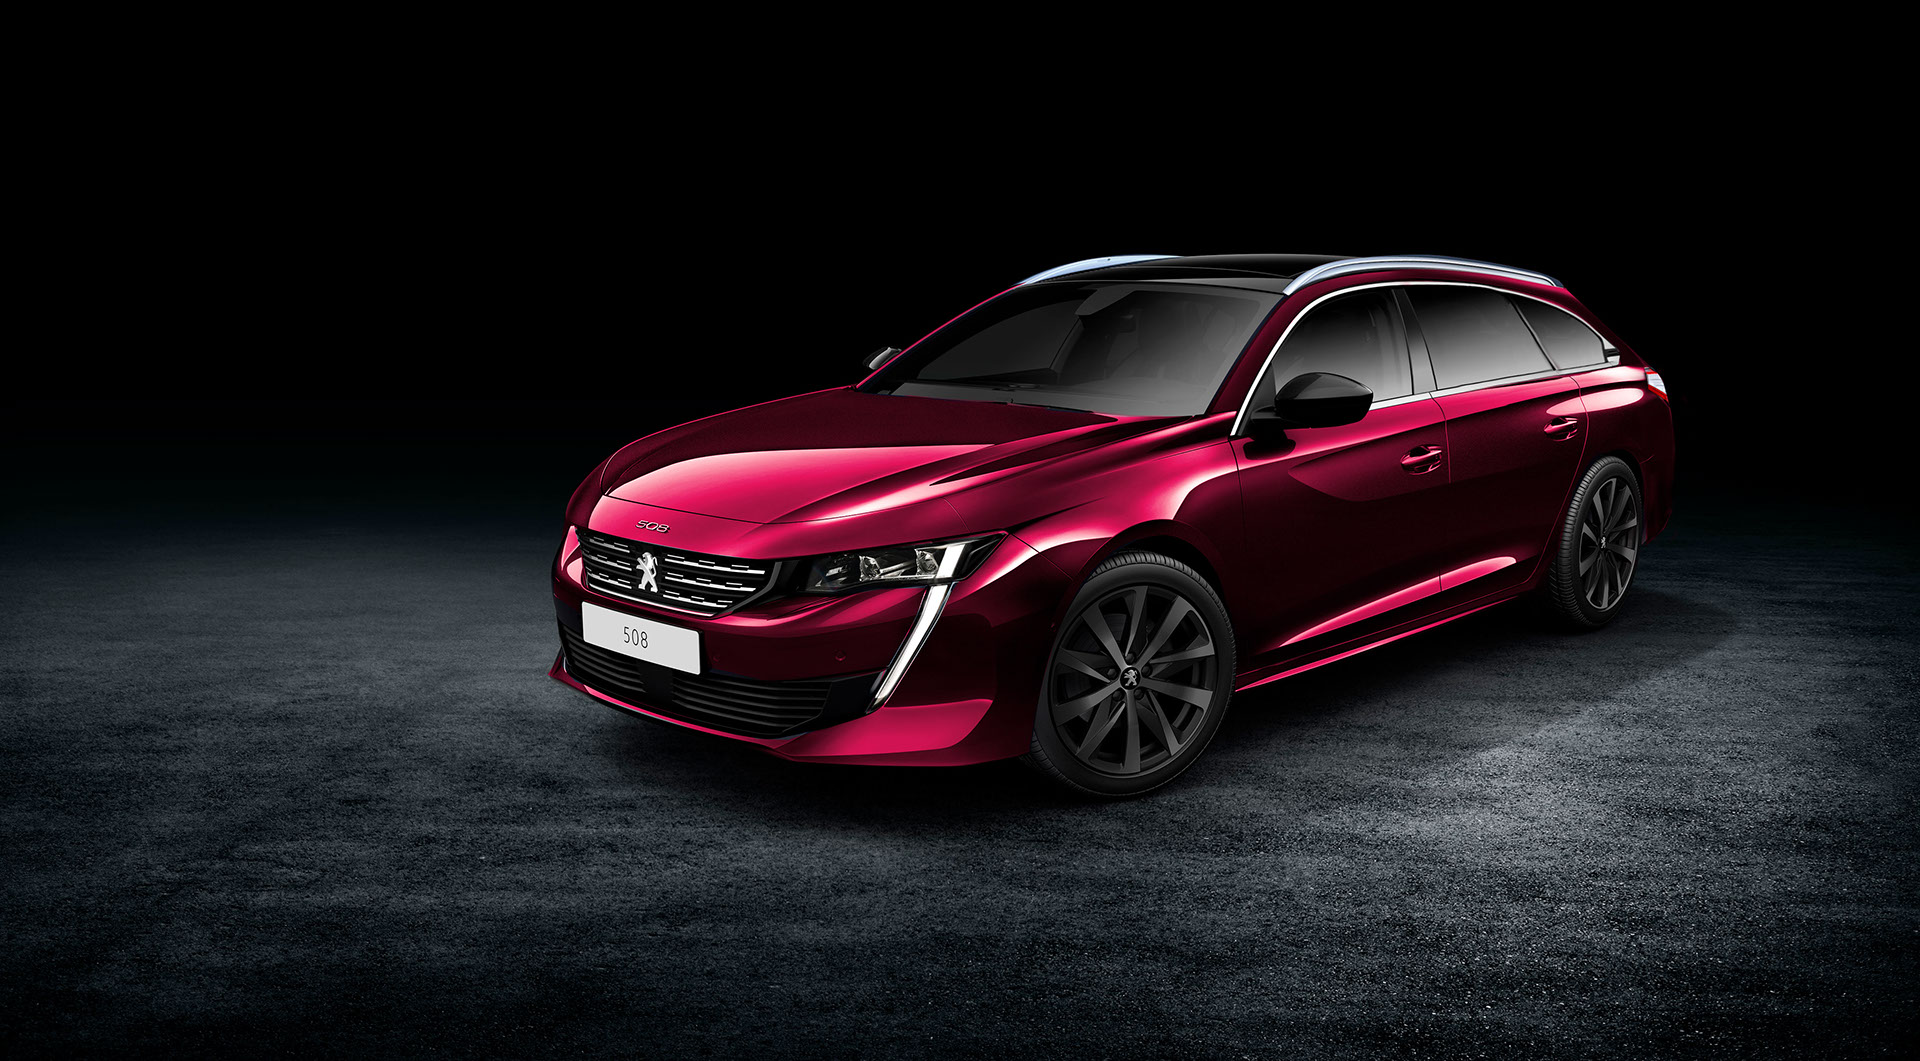 2018 peugeot 508 sw teased online debut imminent autoevolution. Black Bedroom Furniture Sets. Home Design Ideas